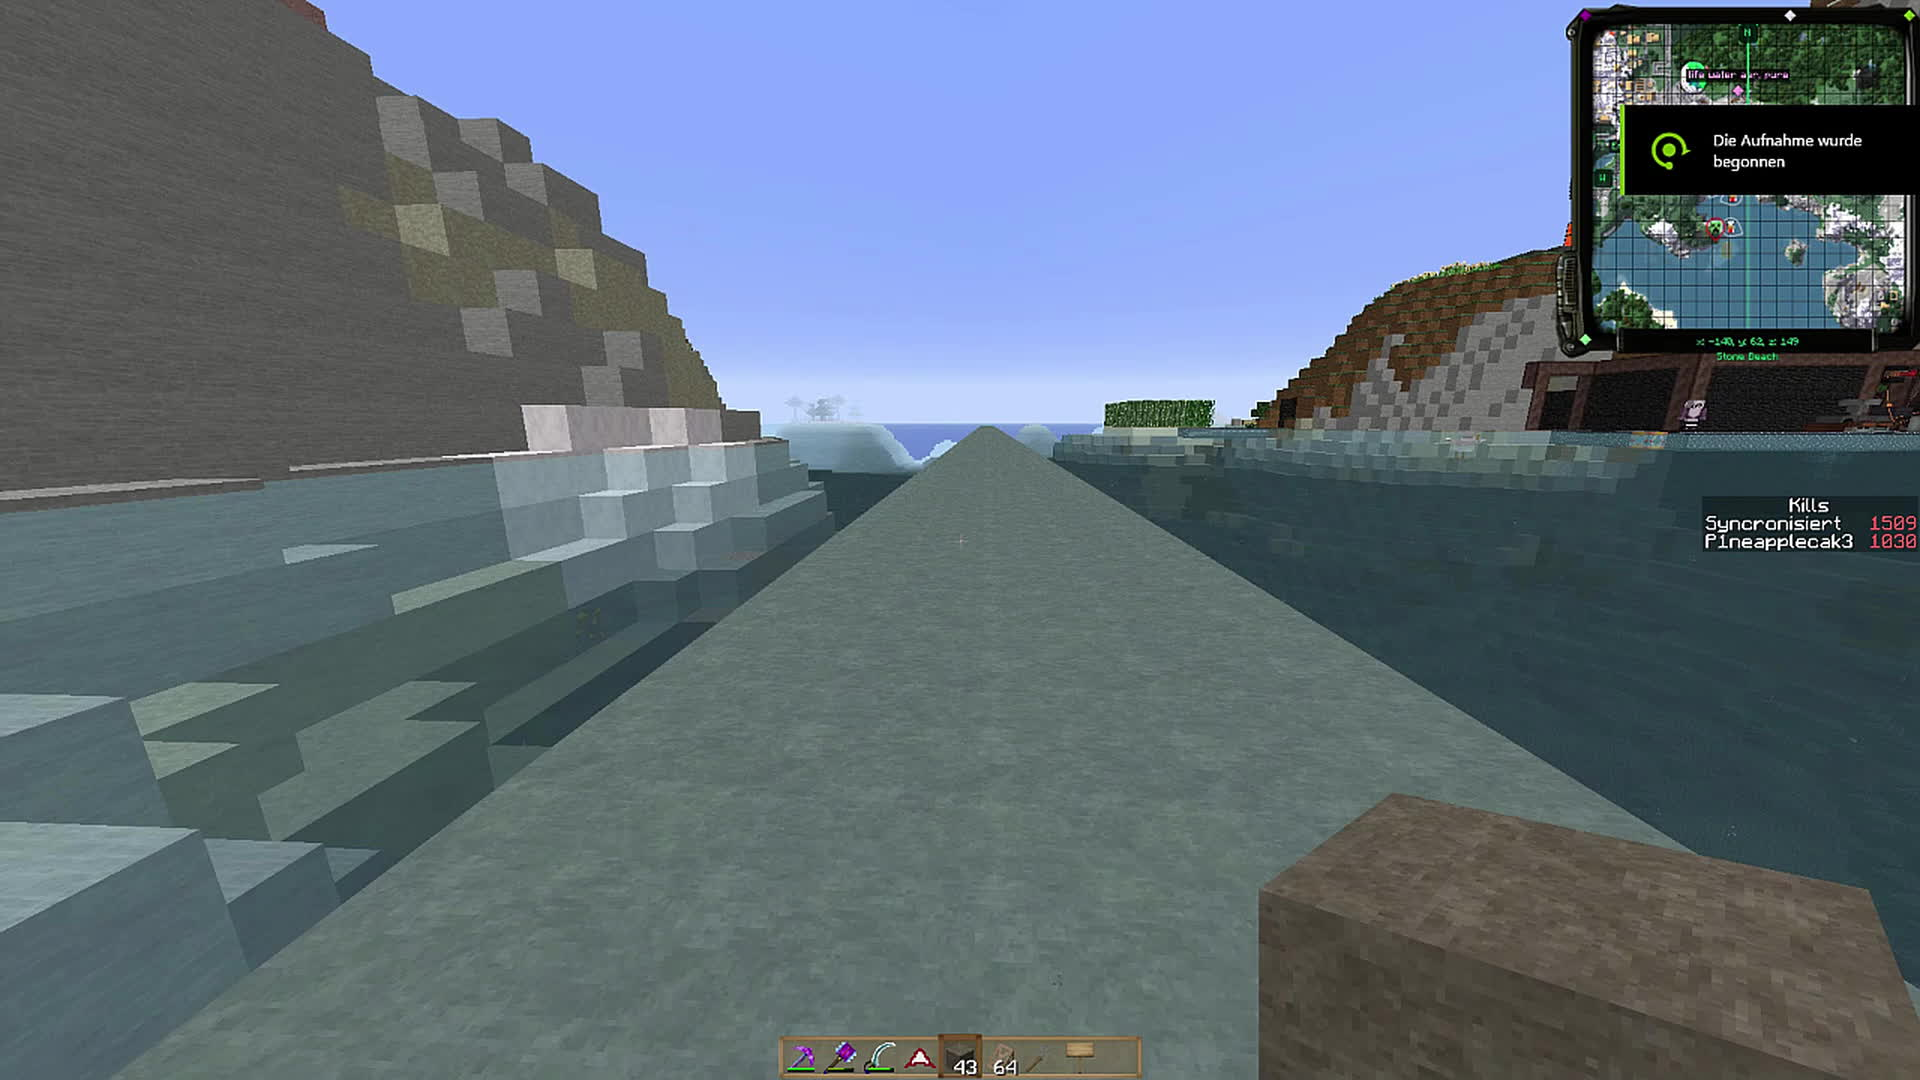 feedthebeast, If you put water on Chisel's concrete you can get pretty fast (reddit) GIFs